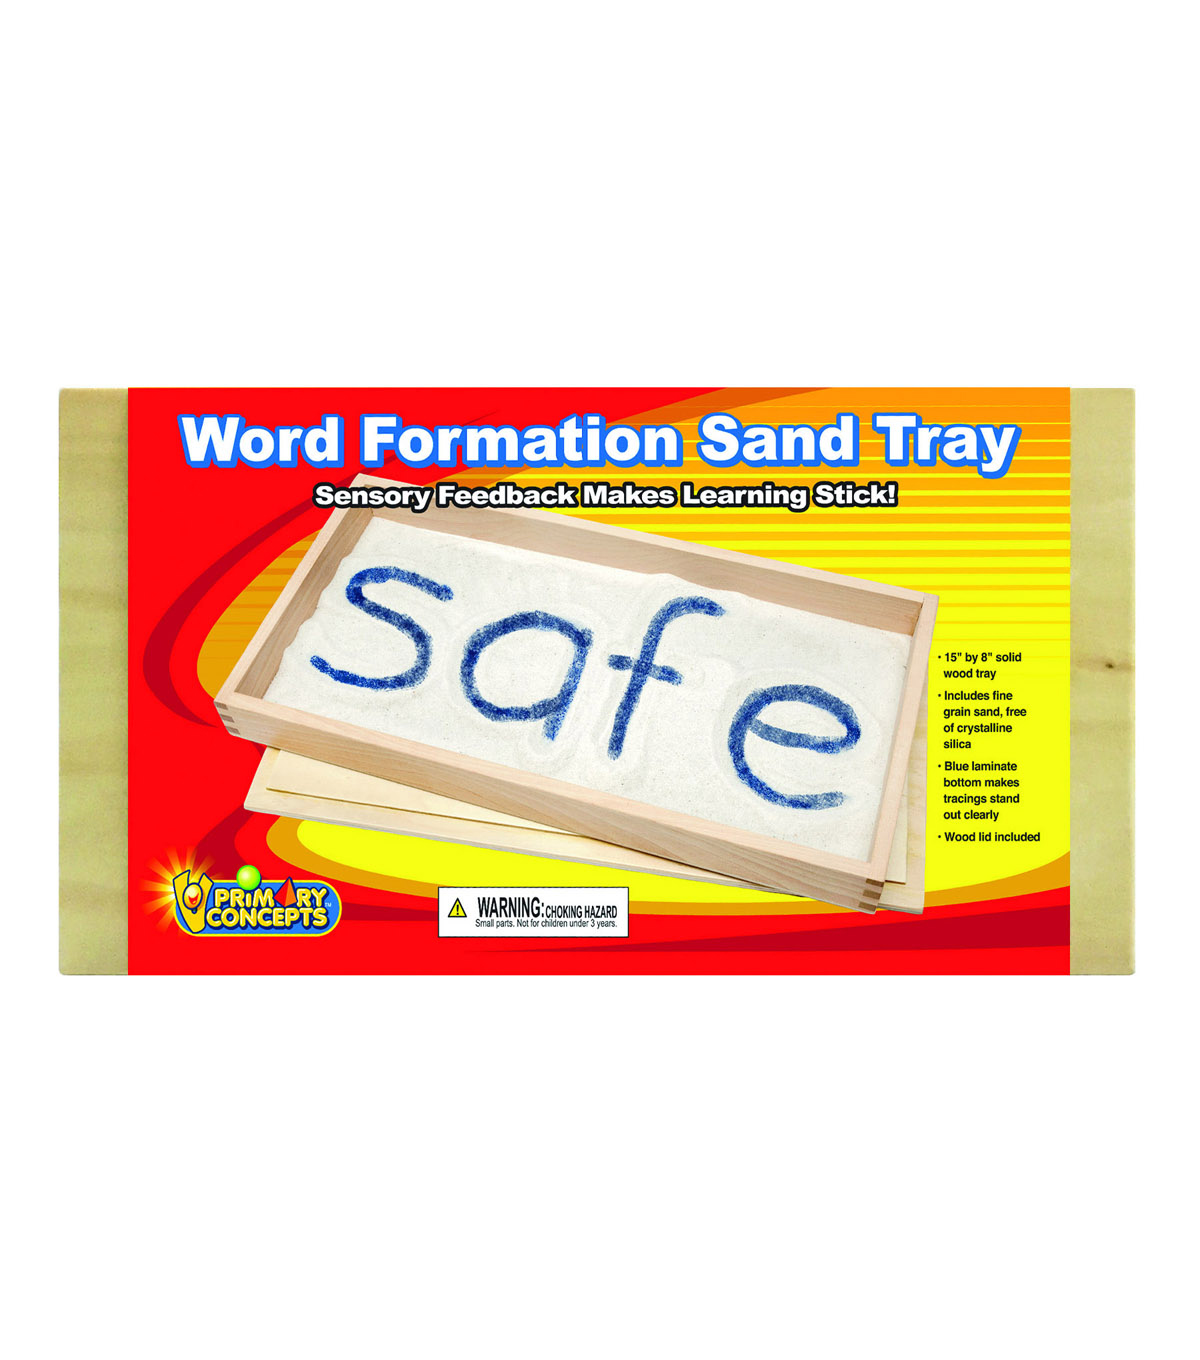 Primary Concepts Word Formation Sand Tray